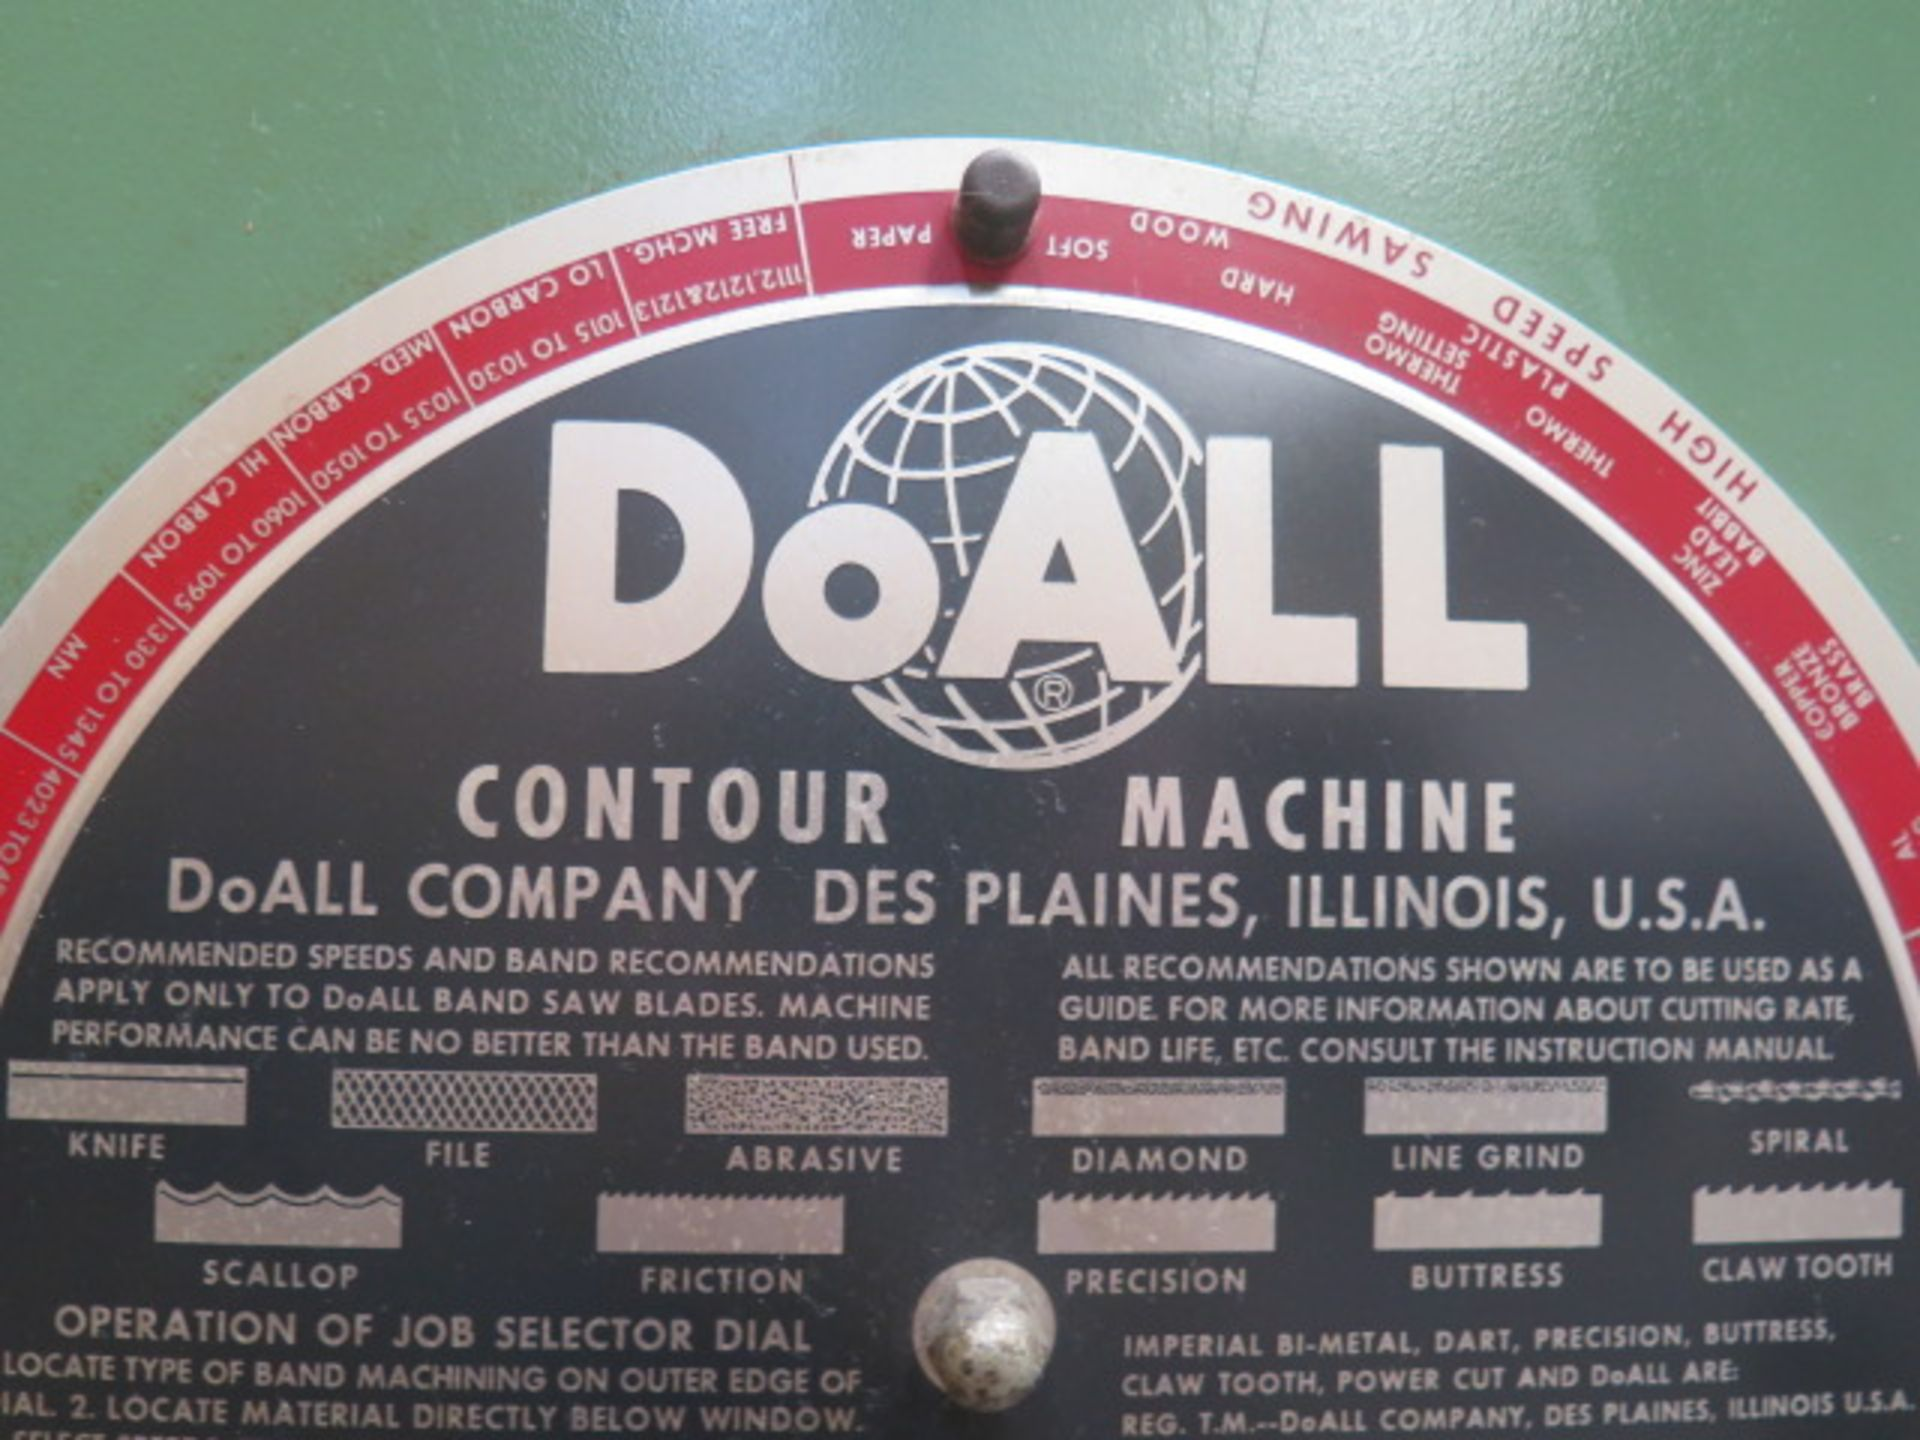 "DoAll 2013-10 20"" Vertical Band Saw s/n 377-861259 w/ Welder, 0-5200 RPM 26"" x 26"" Table, SOLD AS IS - Image 3 of 11"